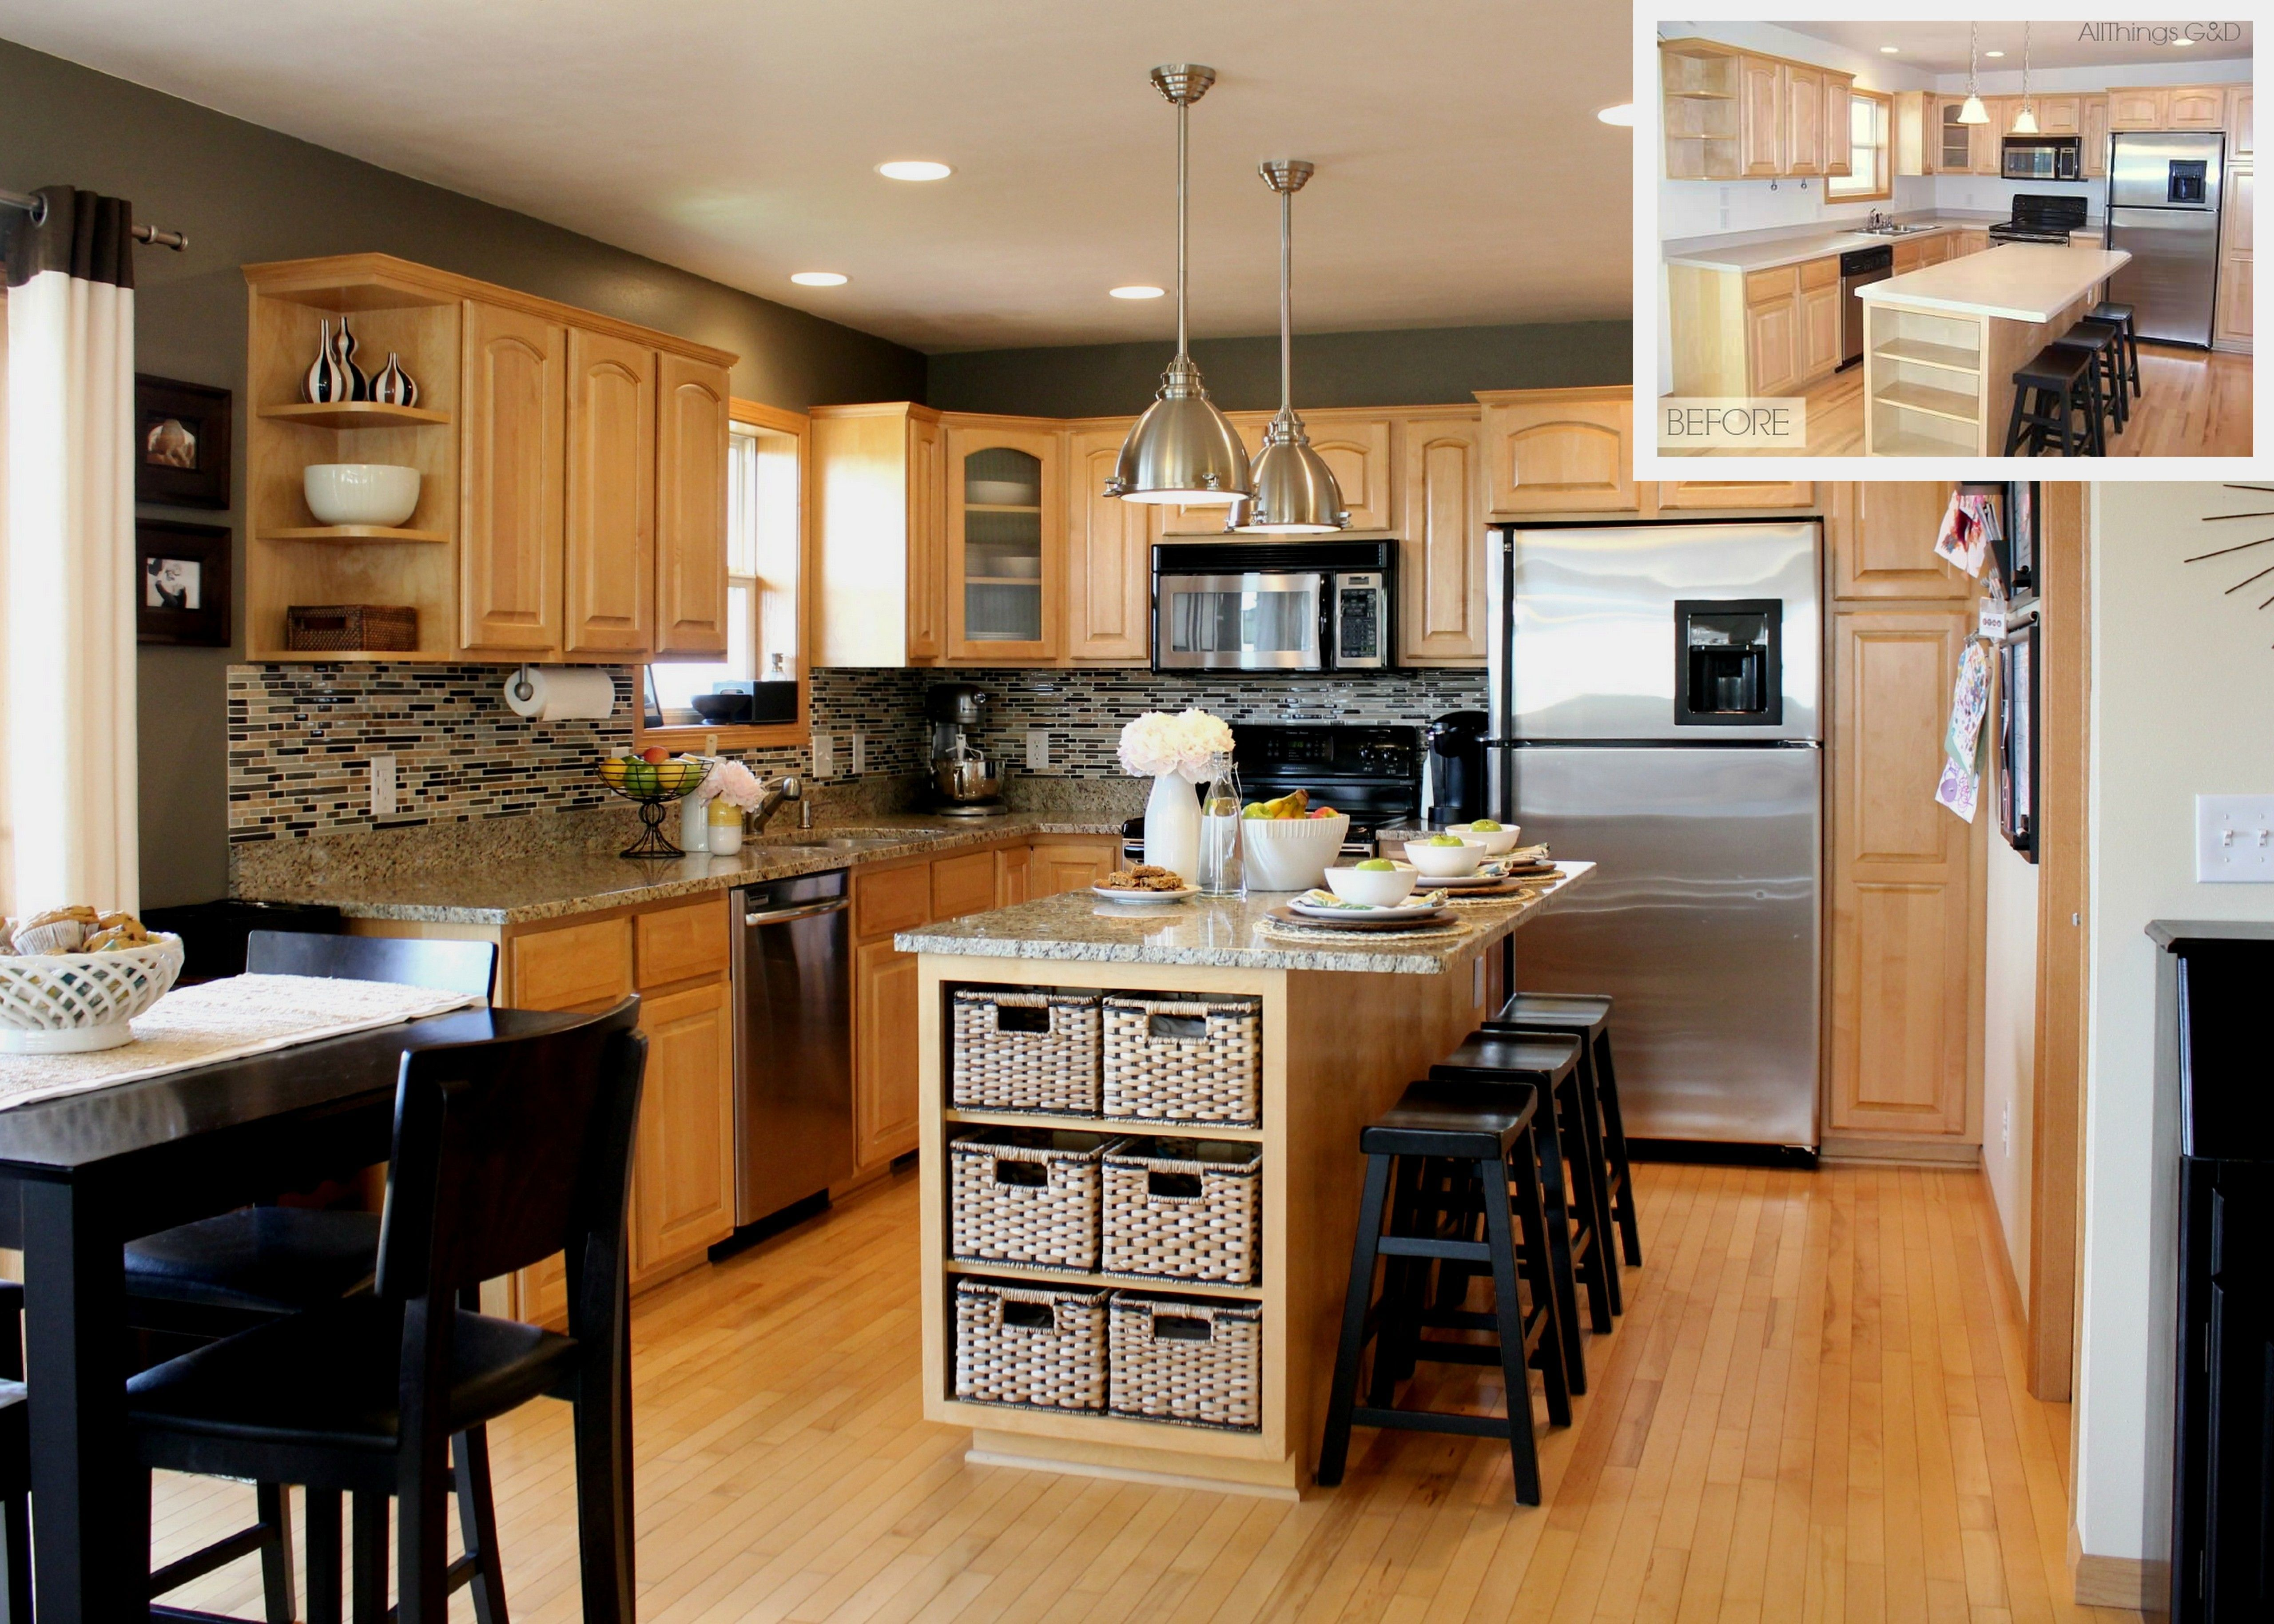 Kitchen Colors That Go With Light Wood Cabinets Grey Kitchen Walls Maple Kitchen Cabinets Kitchen Wall Colors